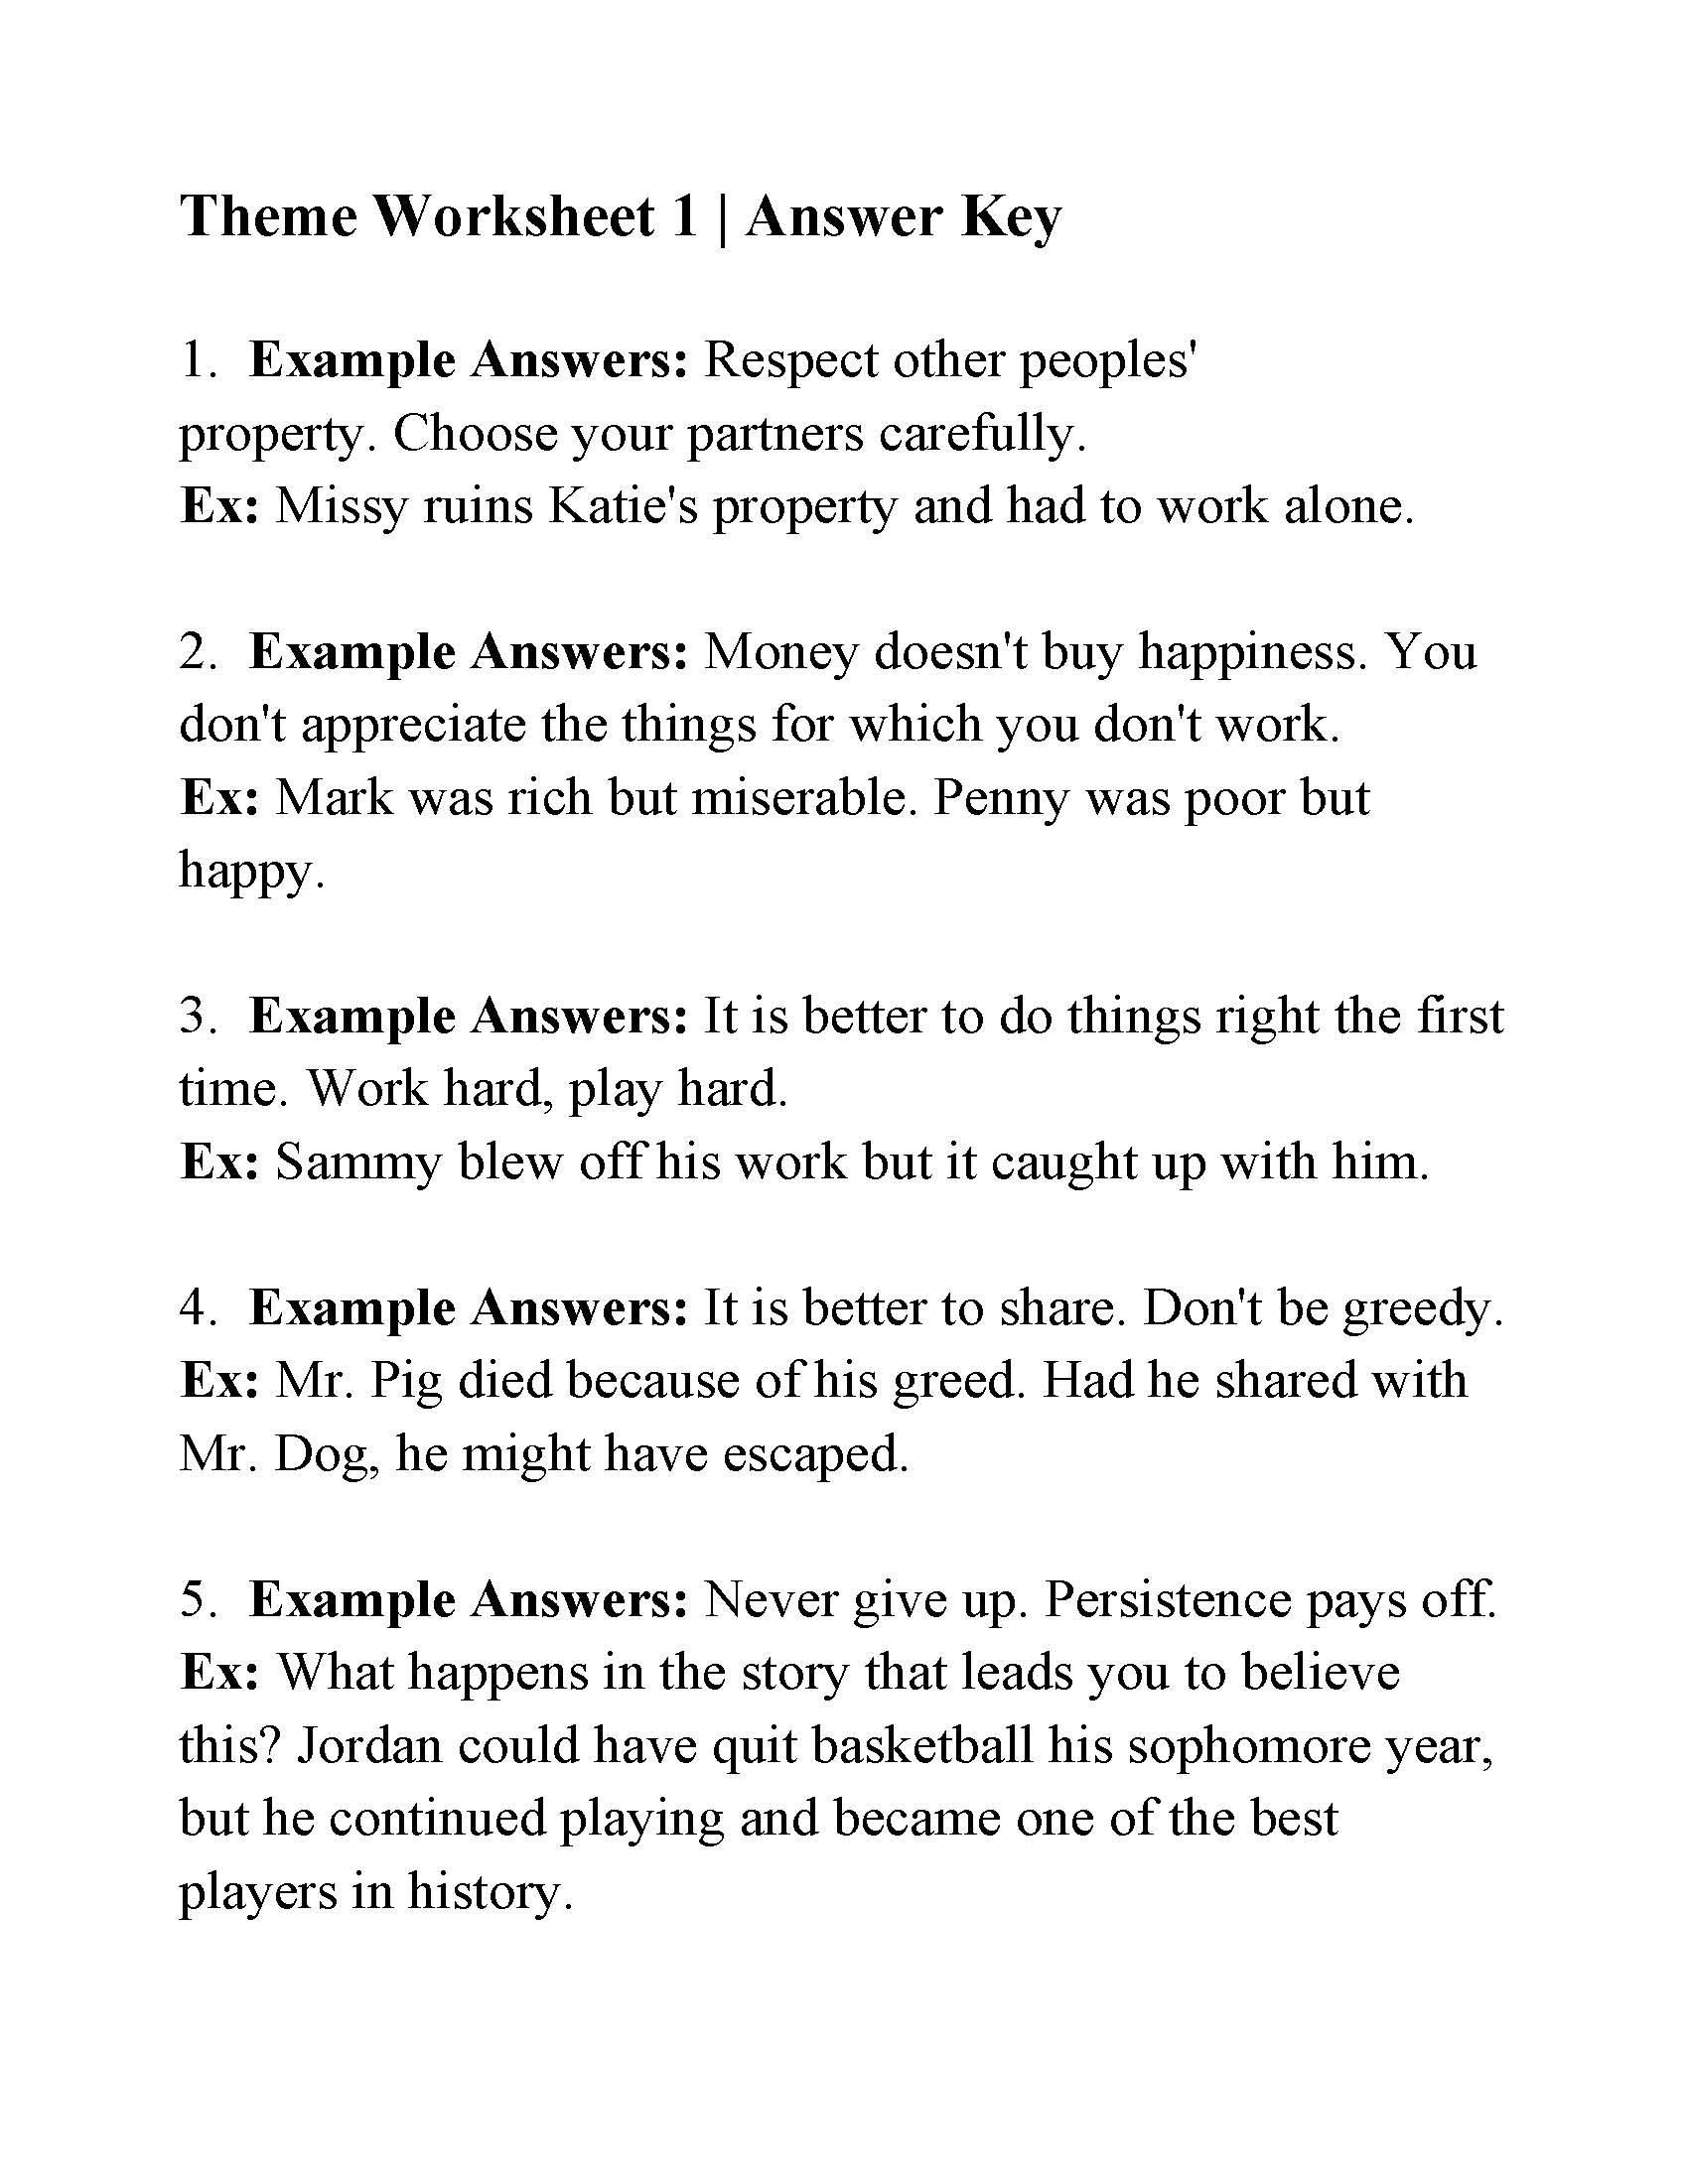 Theme Worksheets for 5th Grade This is the Answer Key for the theme Worksheet 1